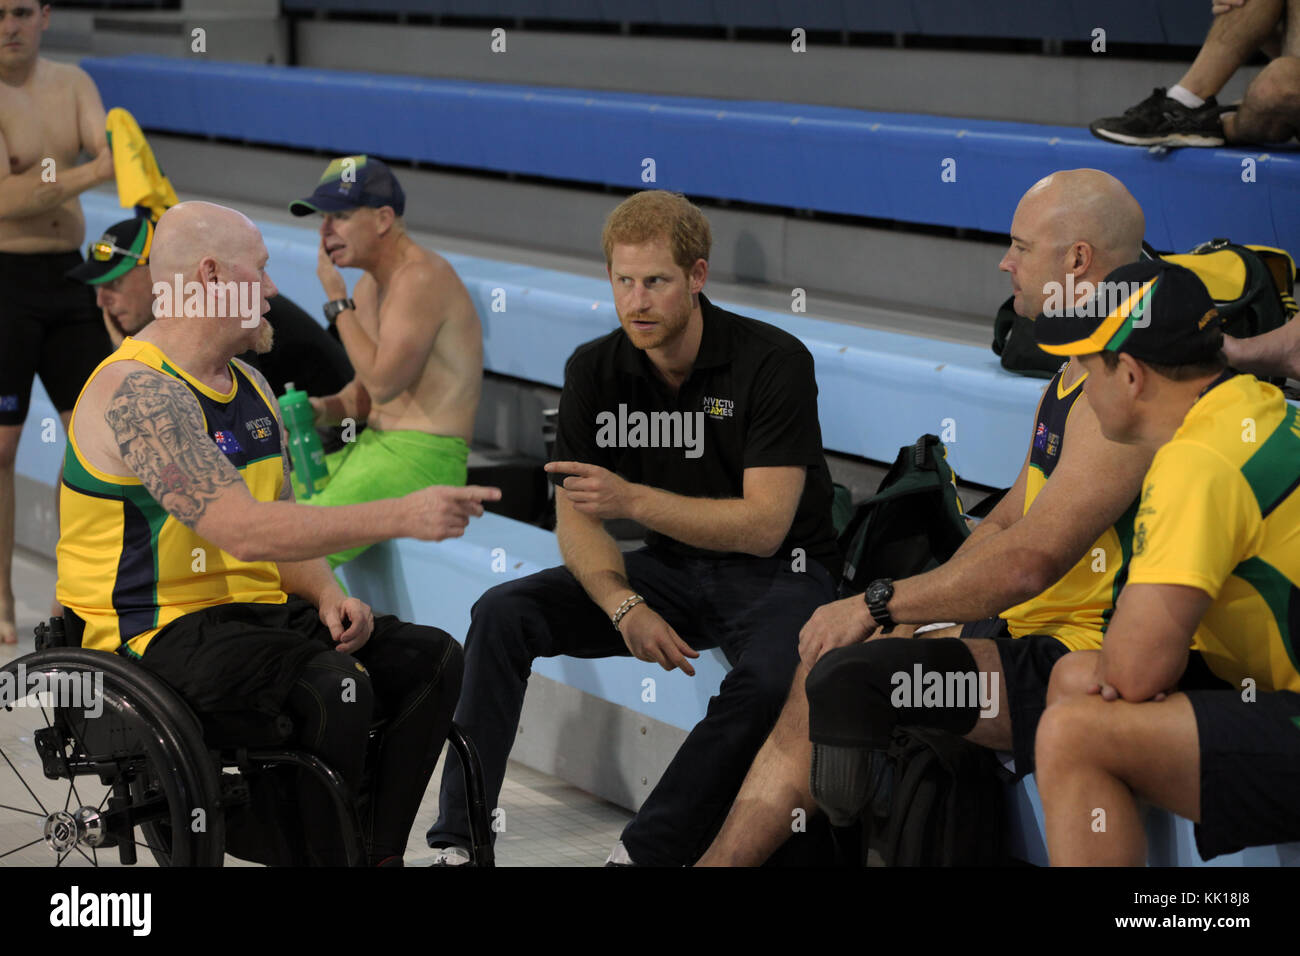 United Kingdom Prince Harry of Wales meets with athletes competing in the Invictus Games at the Toronto Pan Am Sports - Stock Image